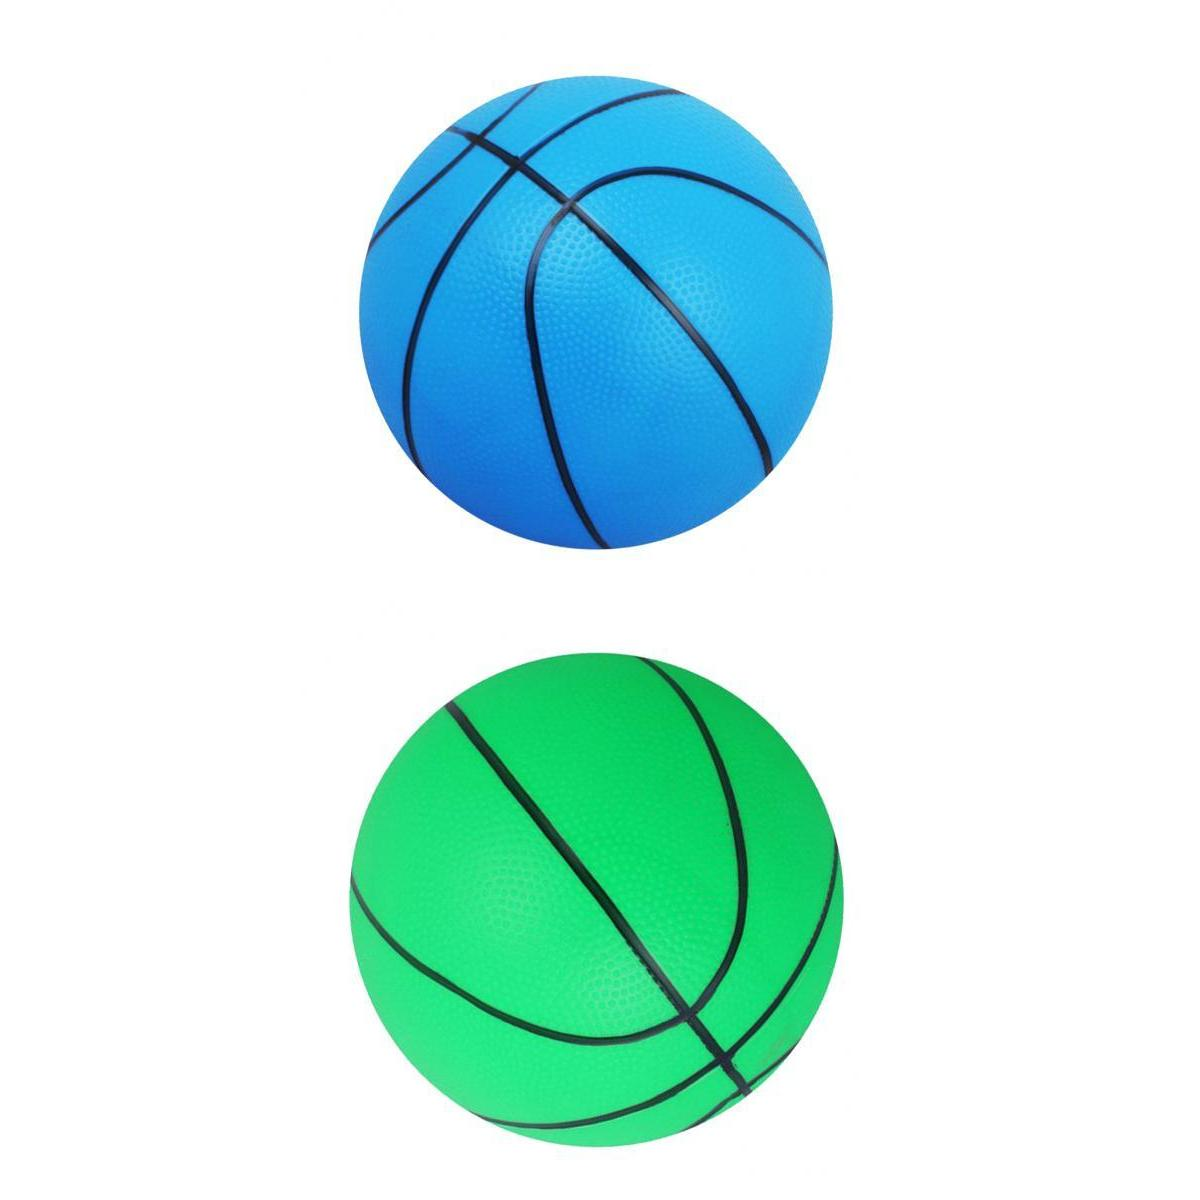 Verde perfeclan 2X Mini Basketball Indoor//Outdoor Sports Ball Juguete para Ni/ños Regalo-Azul